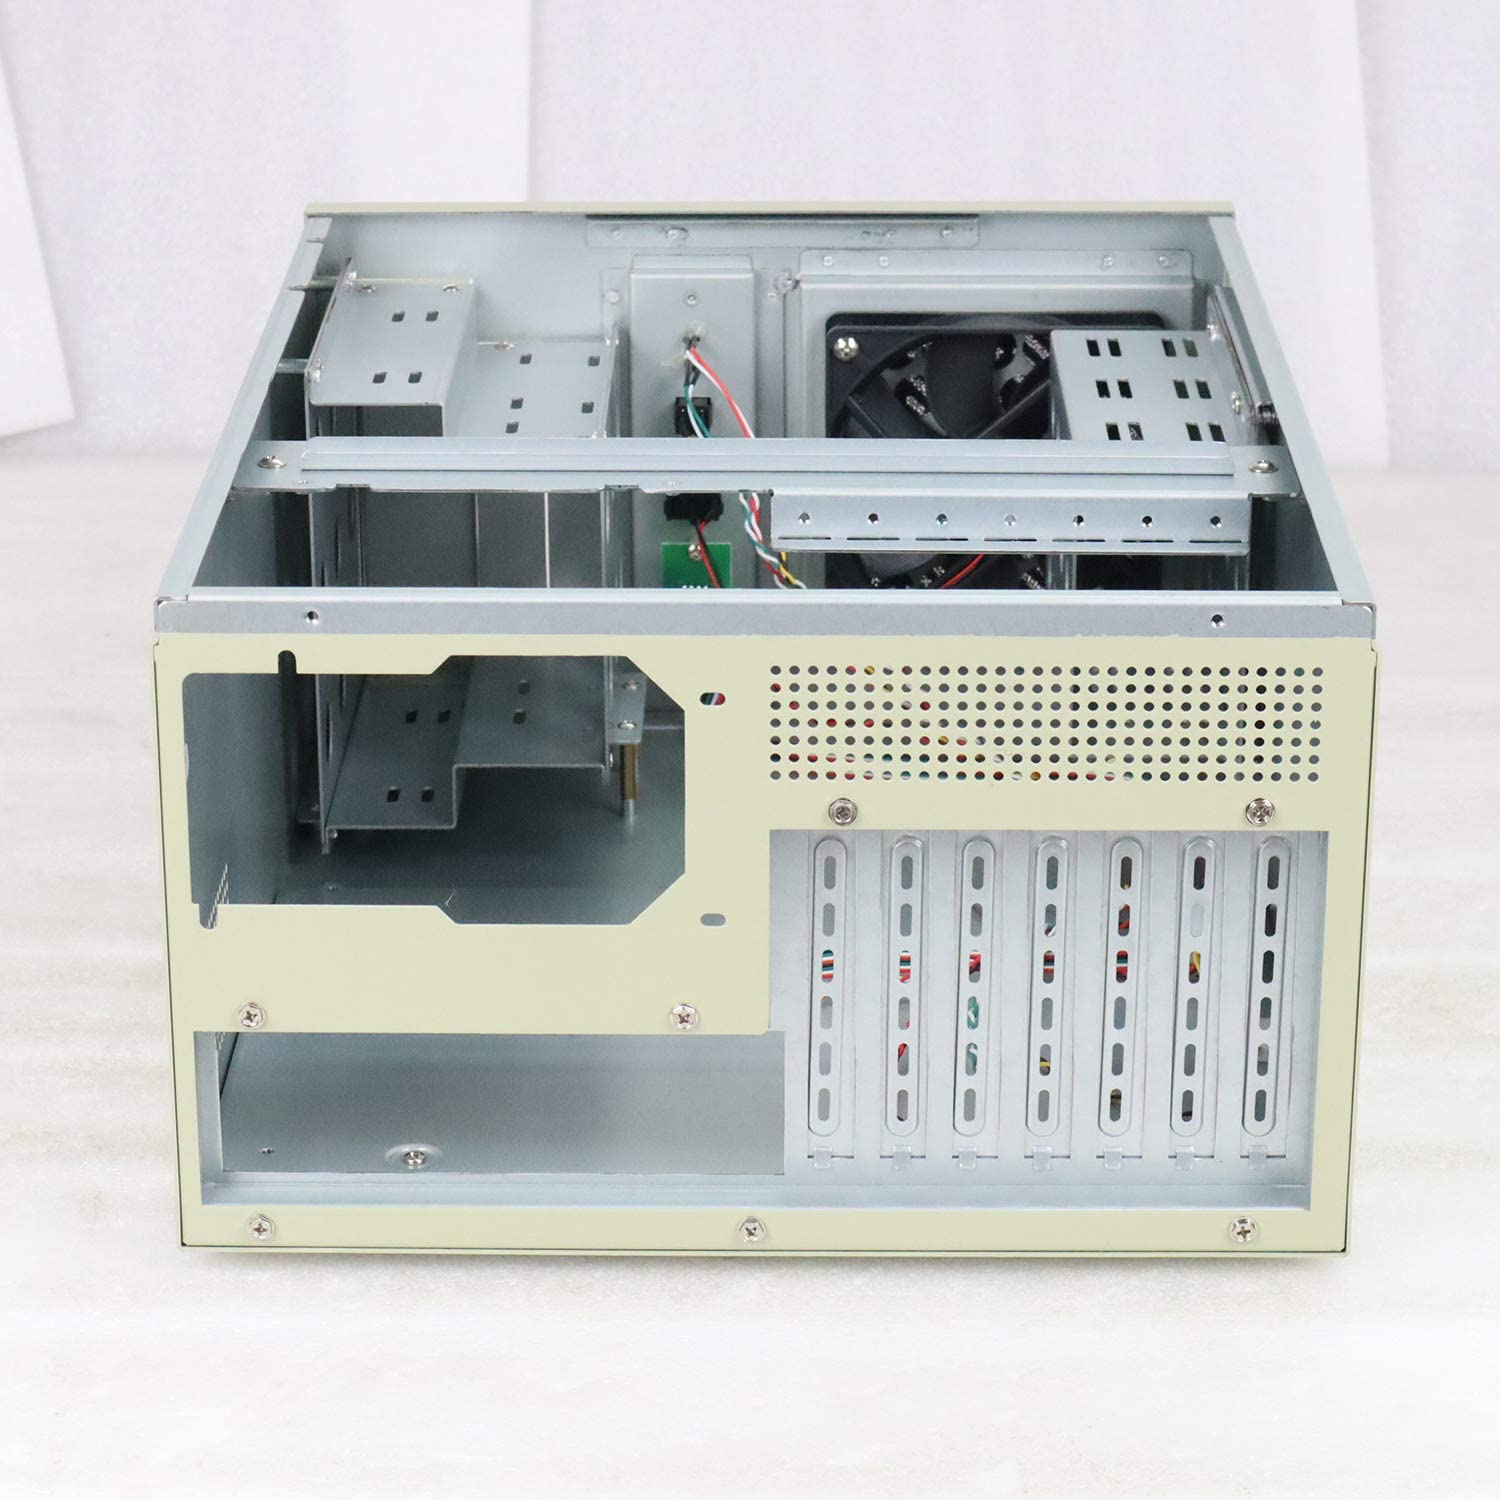 PA broadcasting system paging finance airport engineering JINDIAN 7 slot wall mounted case is used for computer data network wiring bank securities engineering Empty case subway sound system